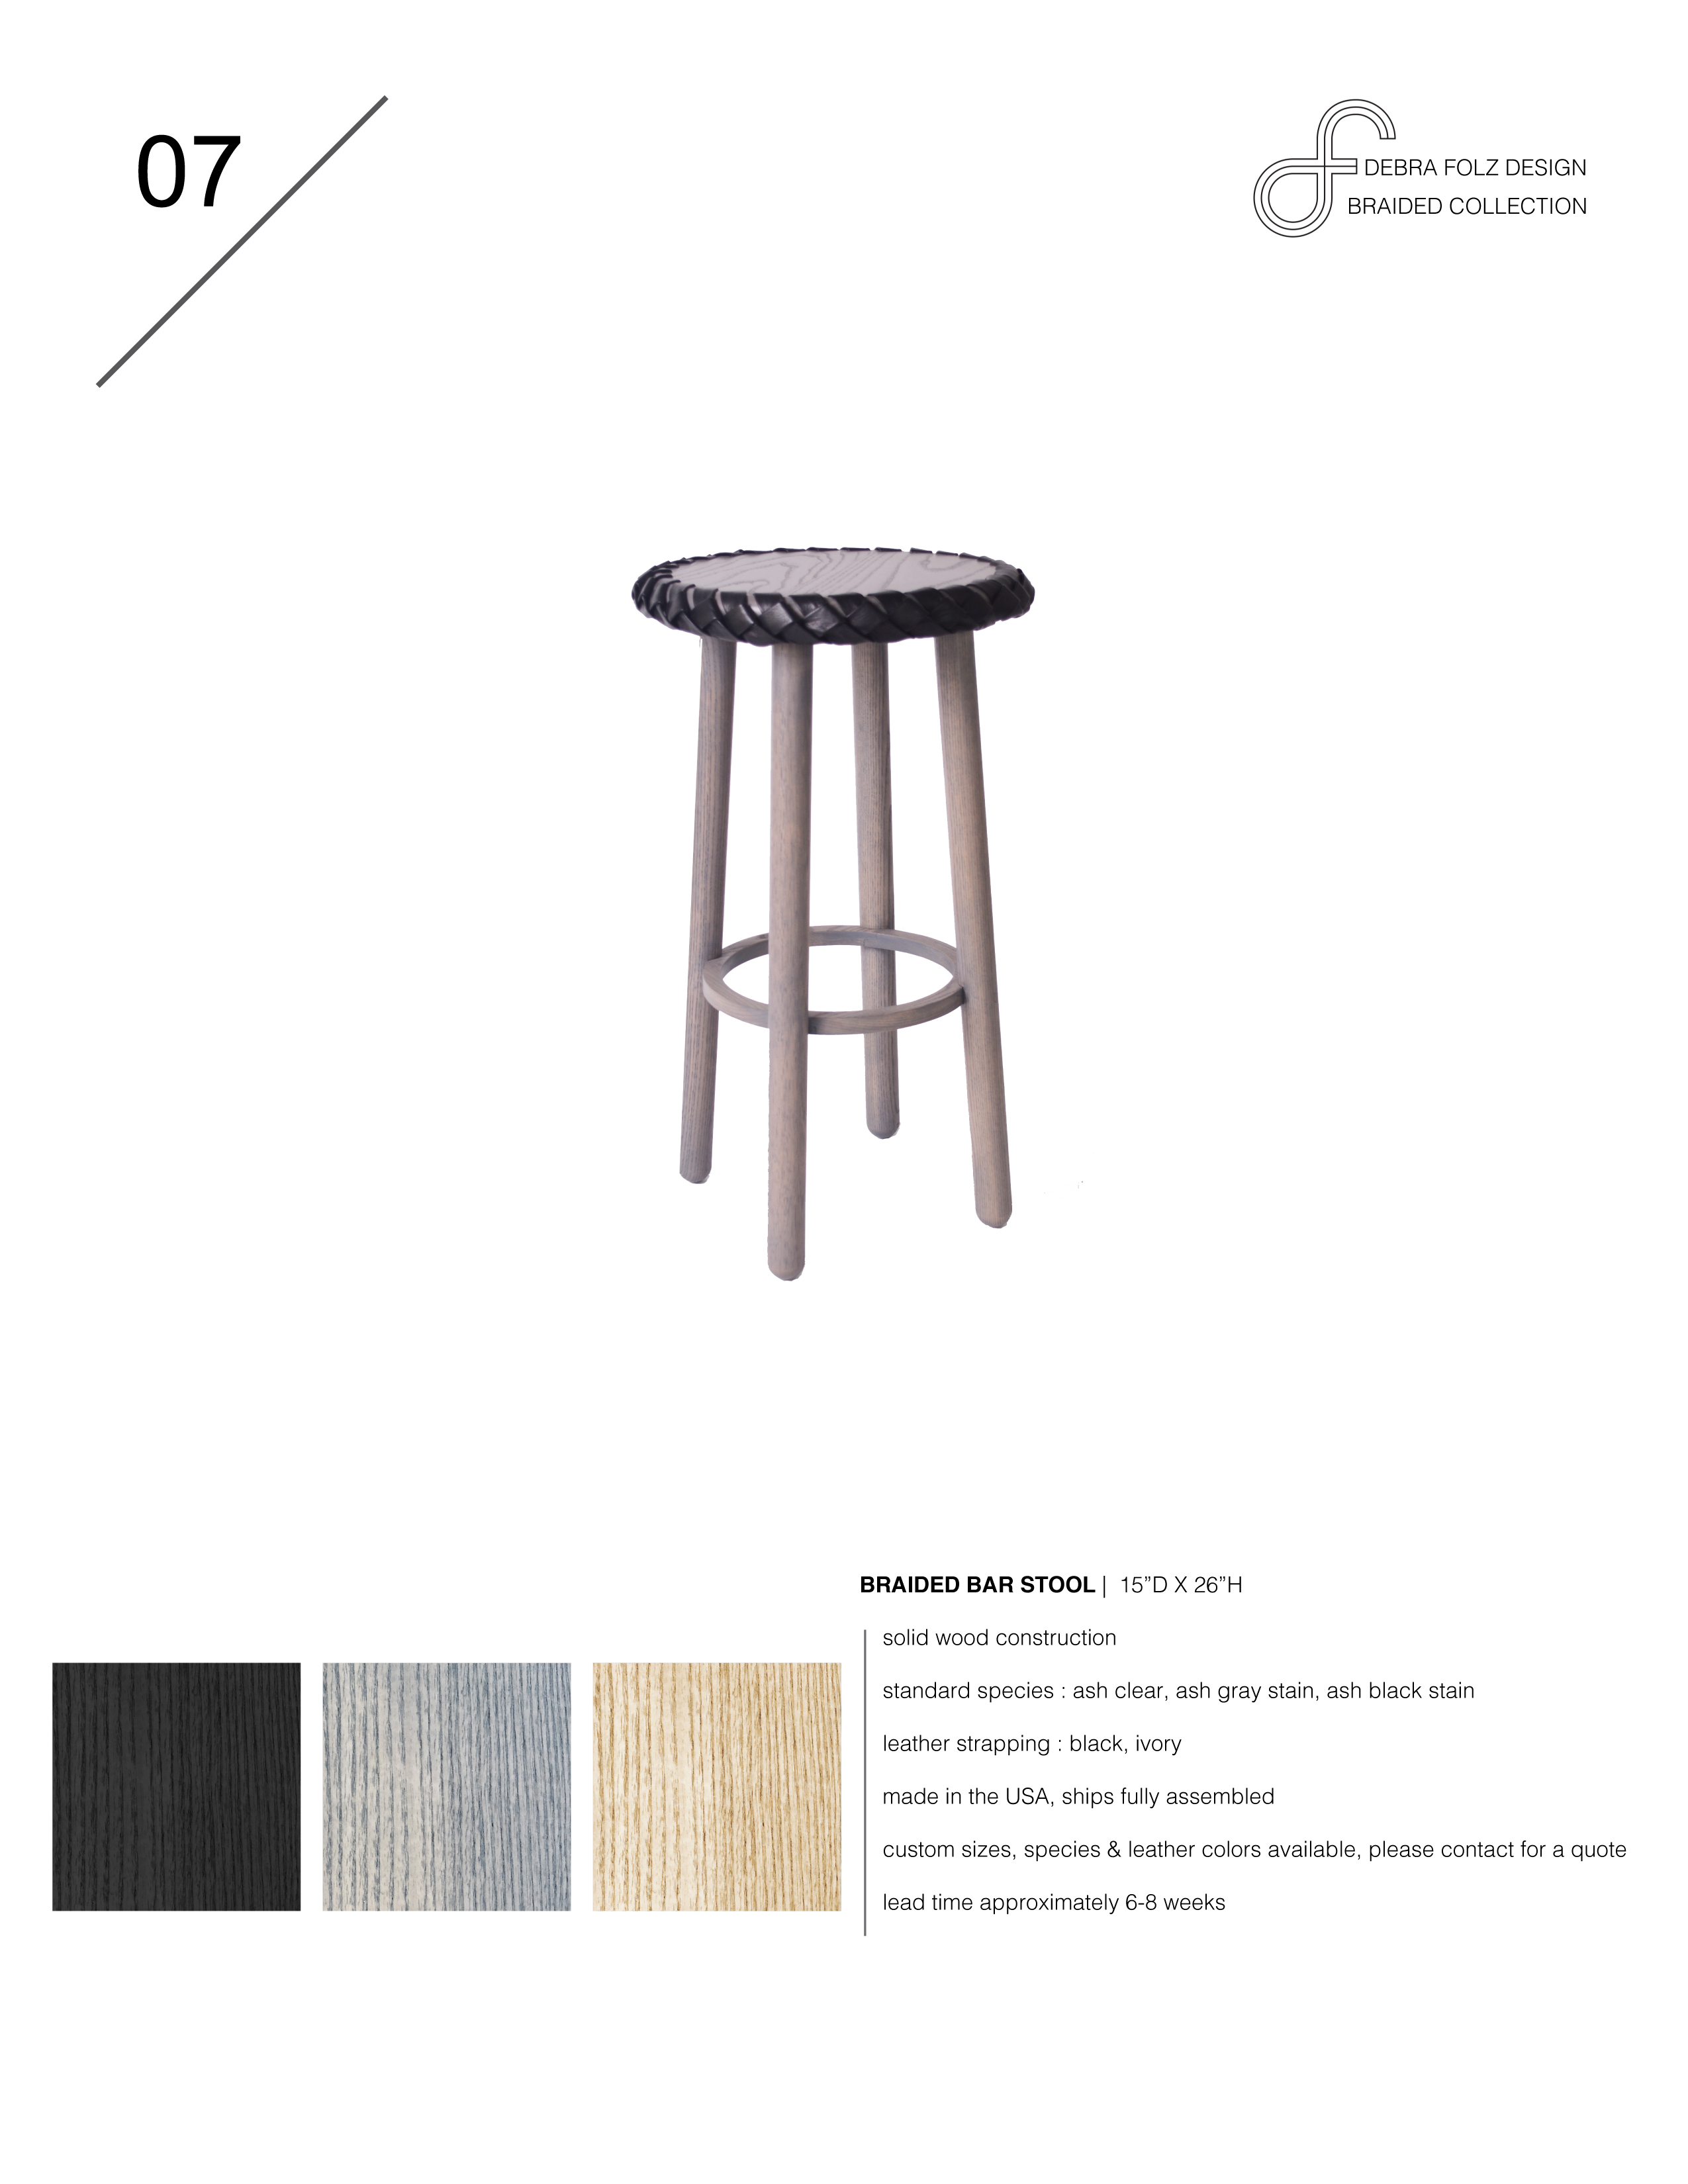 Prime Braided Bar Stool Debra Folzdebra Folz Gmtry Best Dining Table And Chair Ideas Images Gmtryco